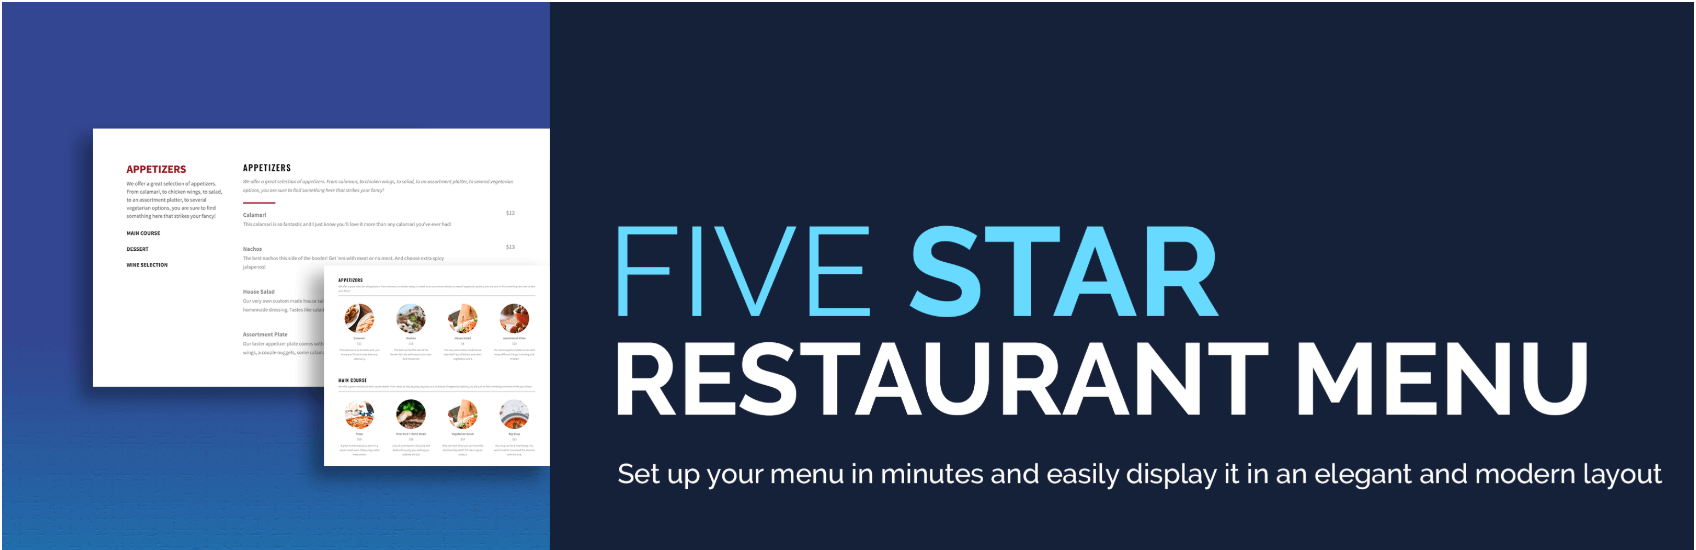 Le plugin Five Star Restaurant Menu pour WordPress.